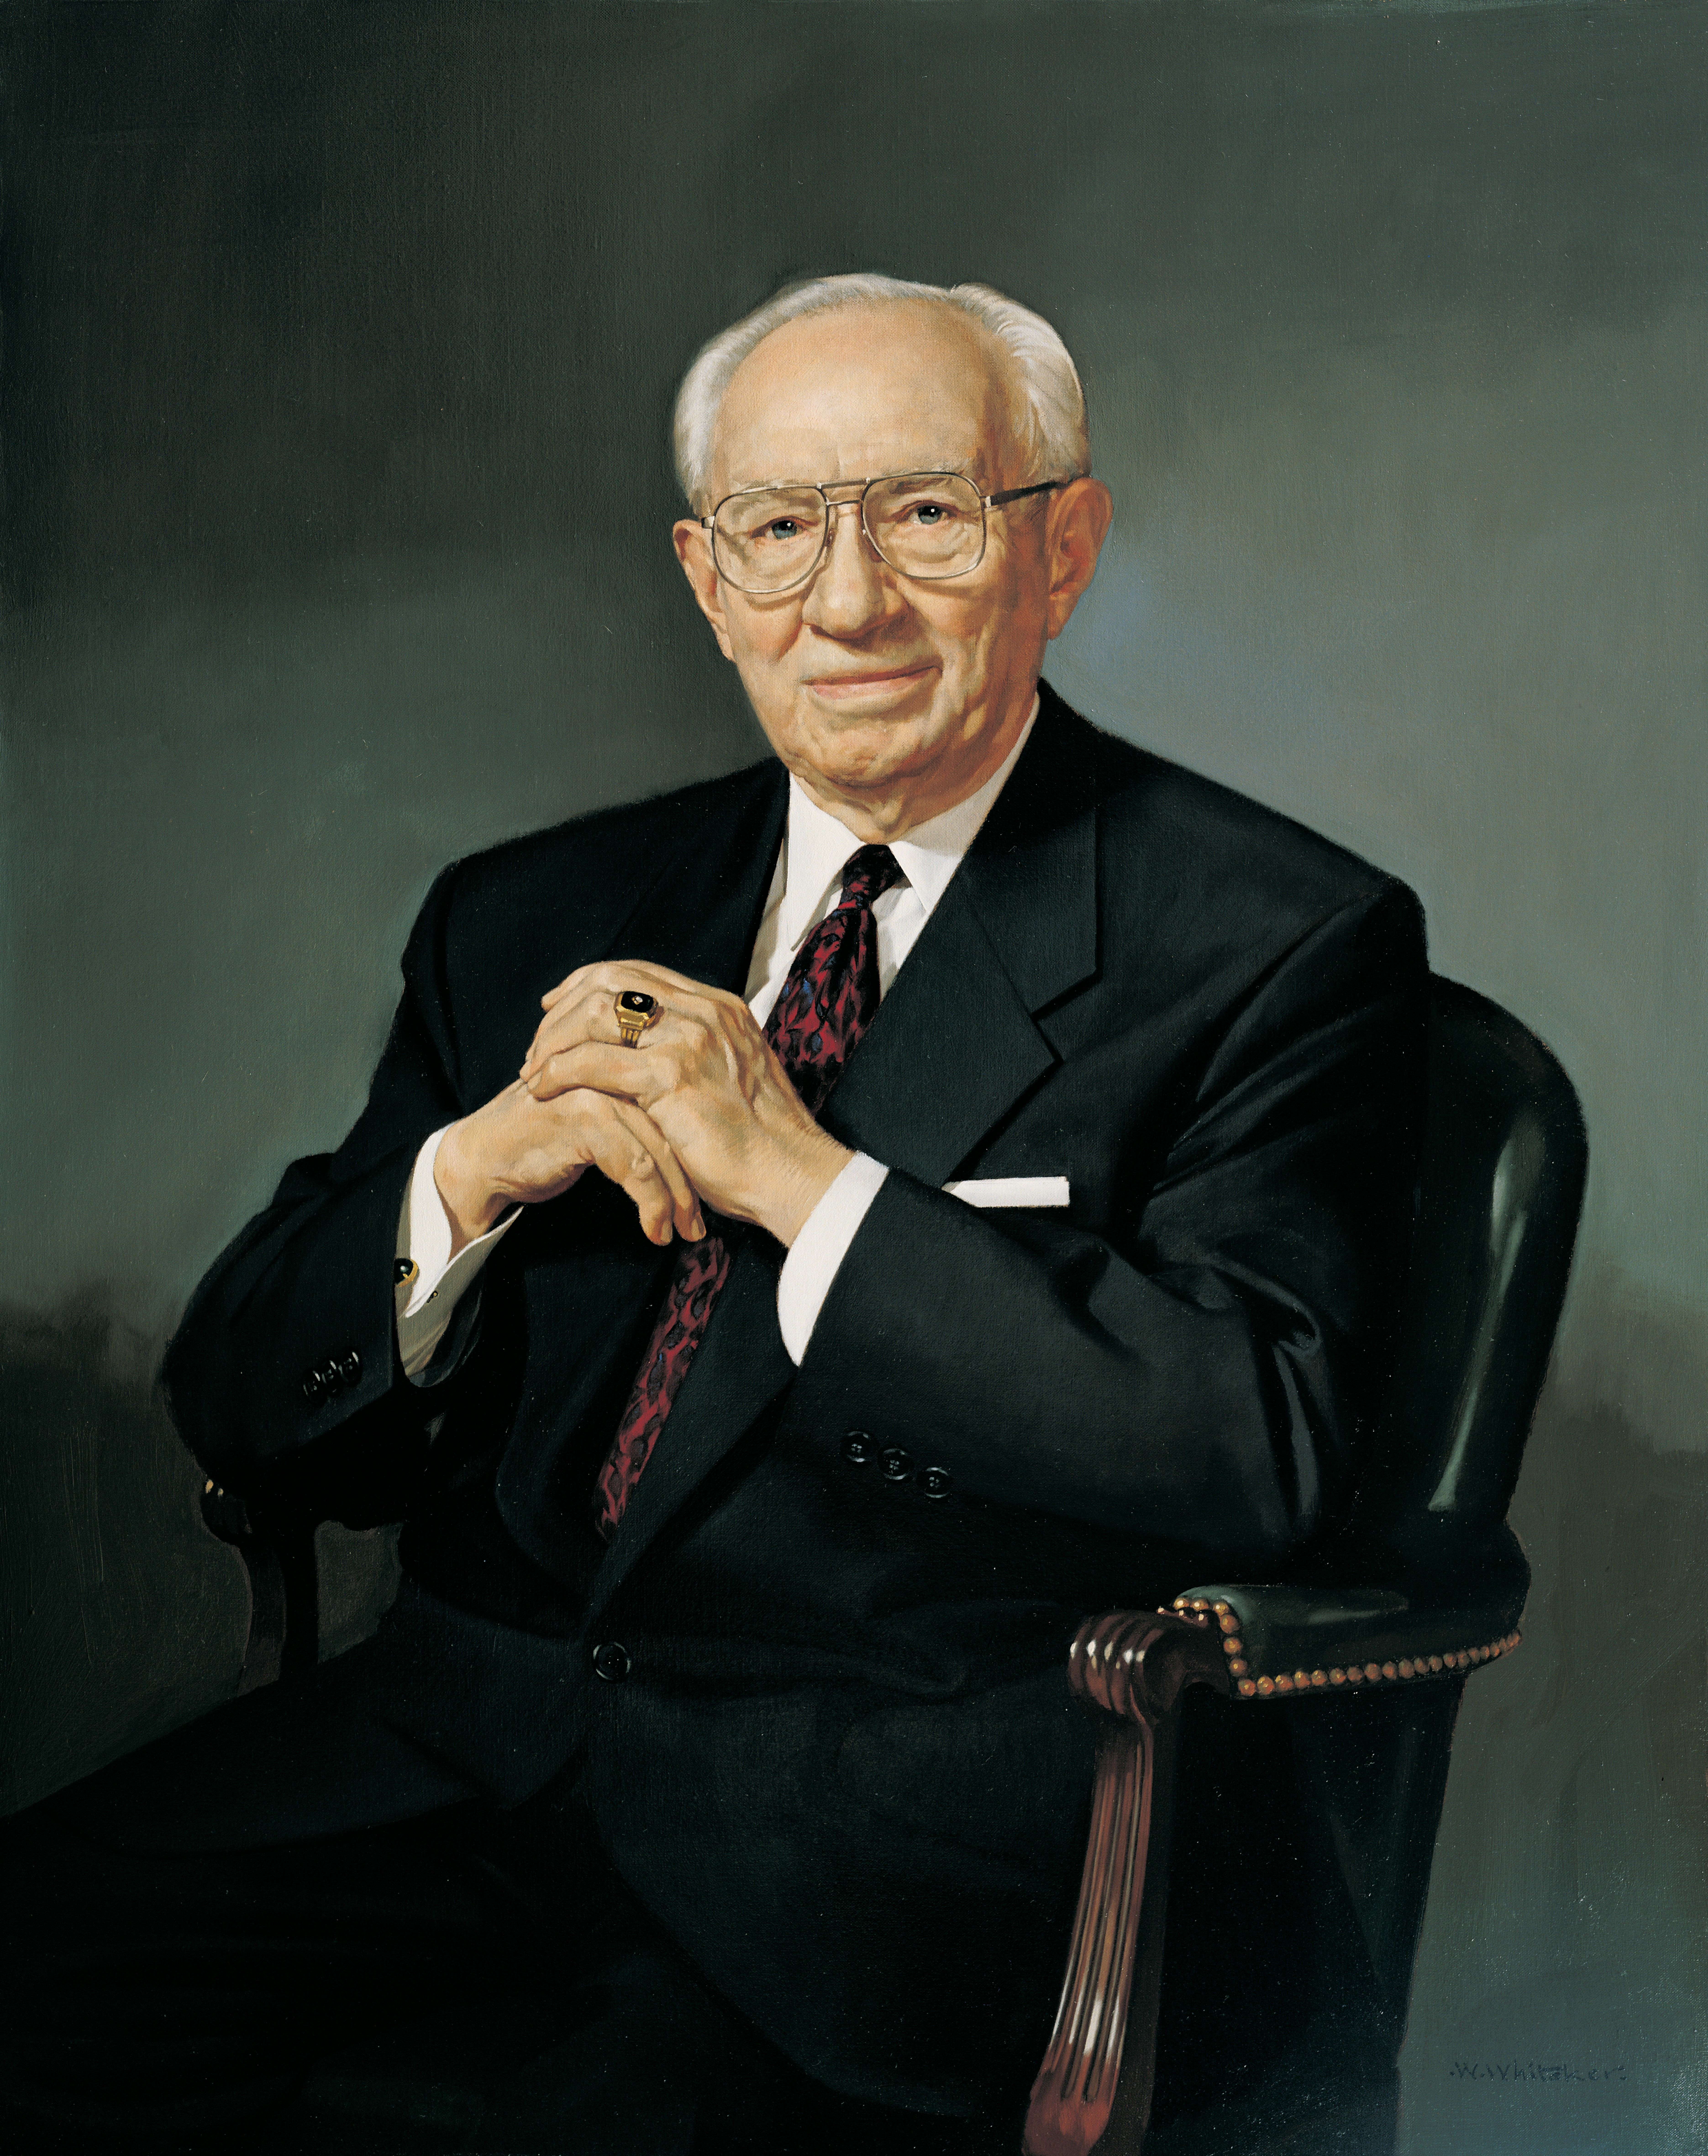 A portrait of Gordon B. Hinckley, who was the 15th President of the Church from 1995 to 2008; painted by William F. Whitaker Jr.